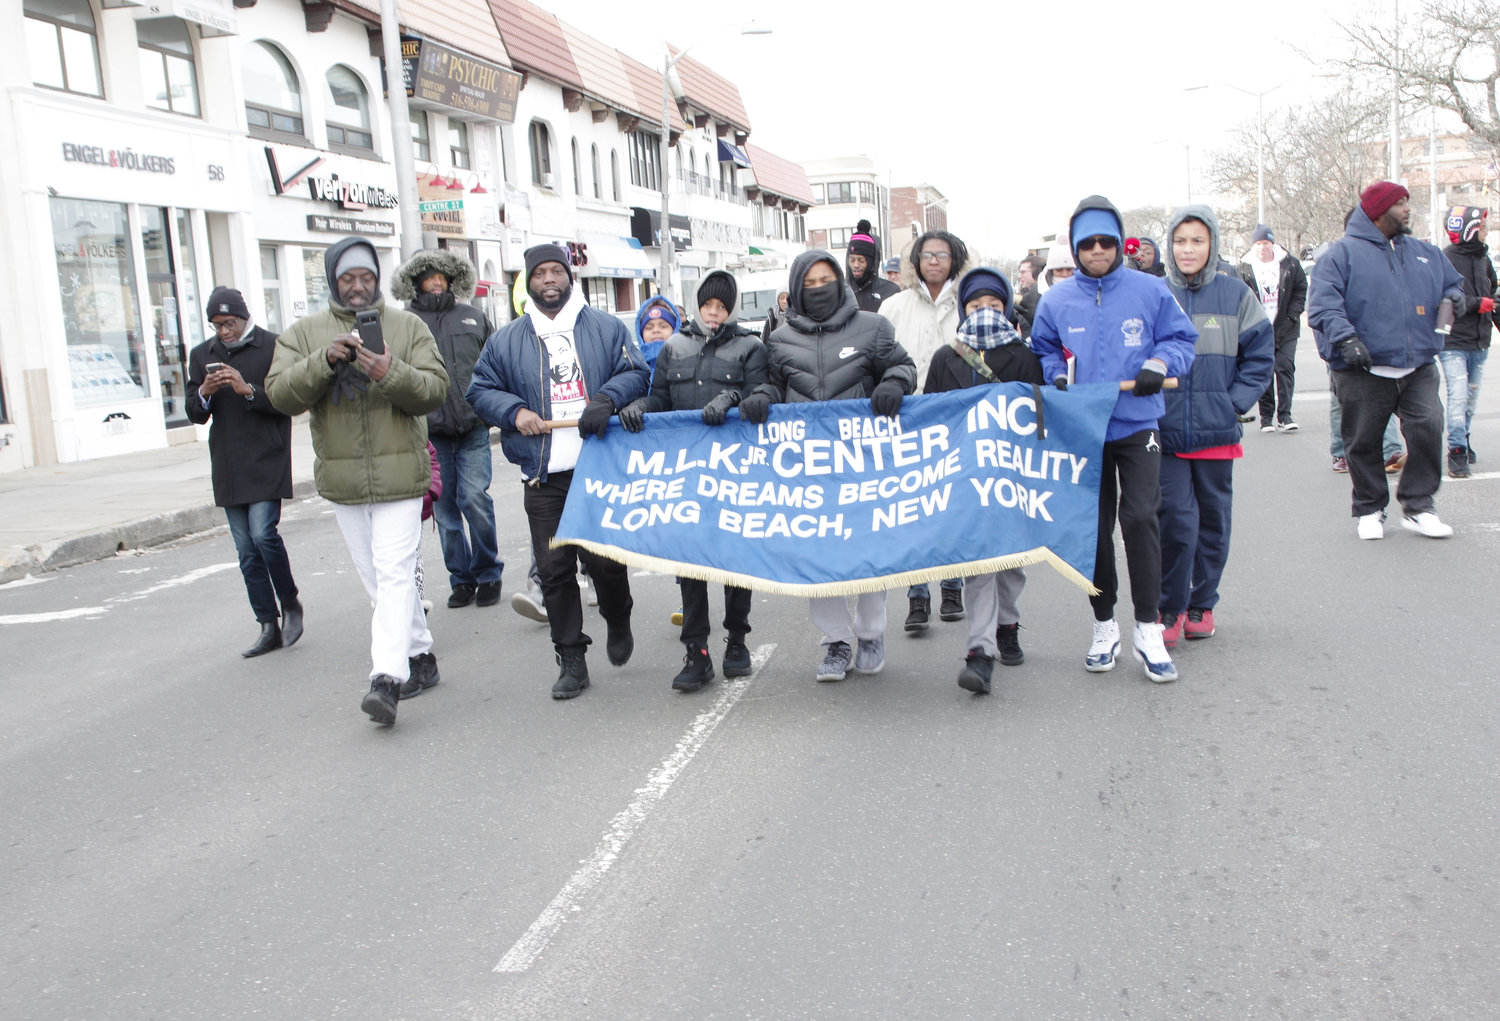 Hundreds of people endured the bitter cold on Monday to march along Riverside Boulevard and celebrate the legacy of the Rev. Dr. Martin Luther King Jr., six days after what would have been his 90th birthday.